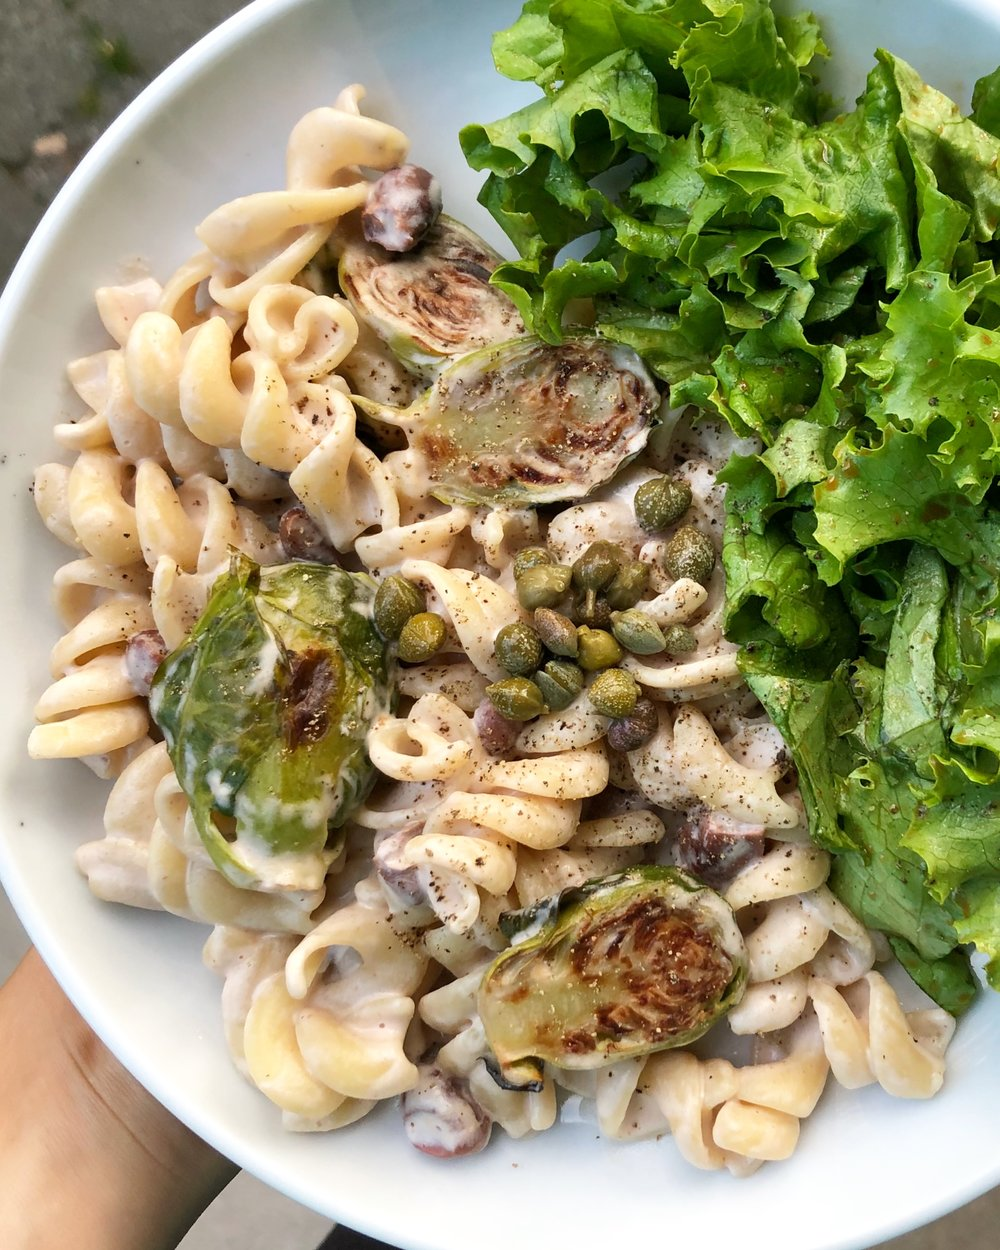 Cashew-walnut cream pasta with roasted brussels sprouts, pinto beans, capers, and green salad dressed with balsamic vinaigrette.